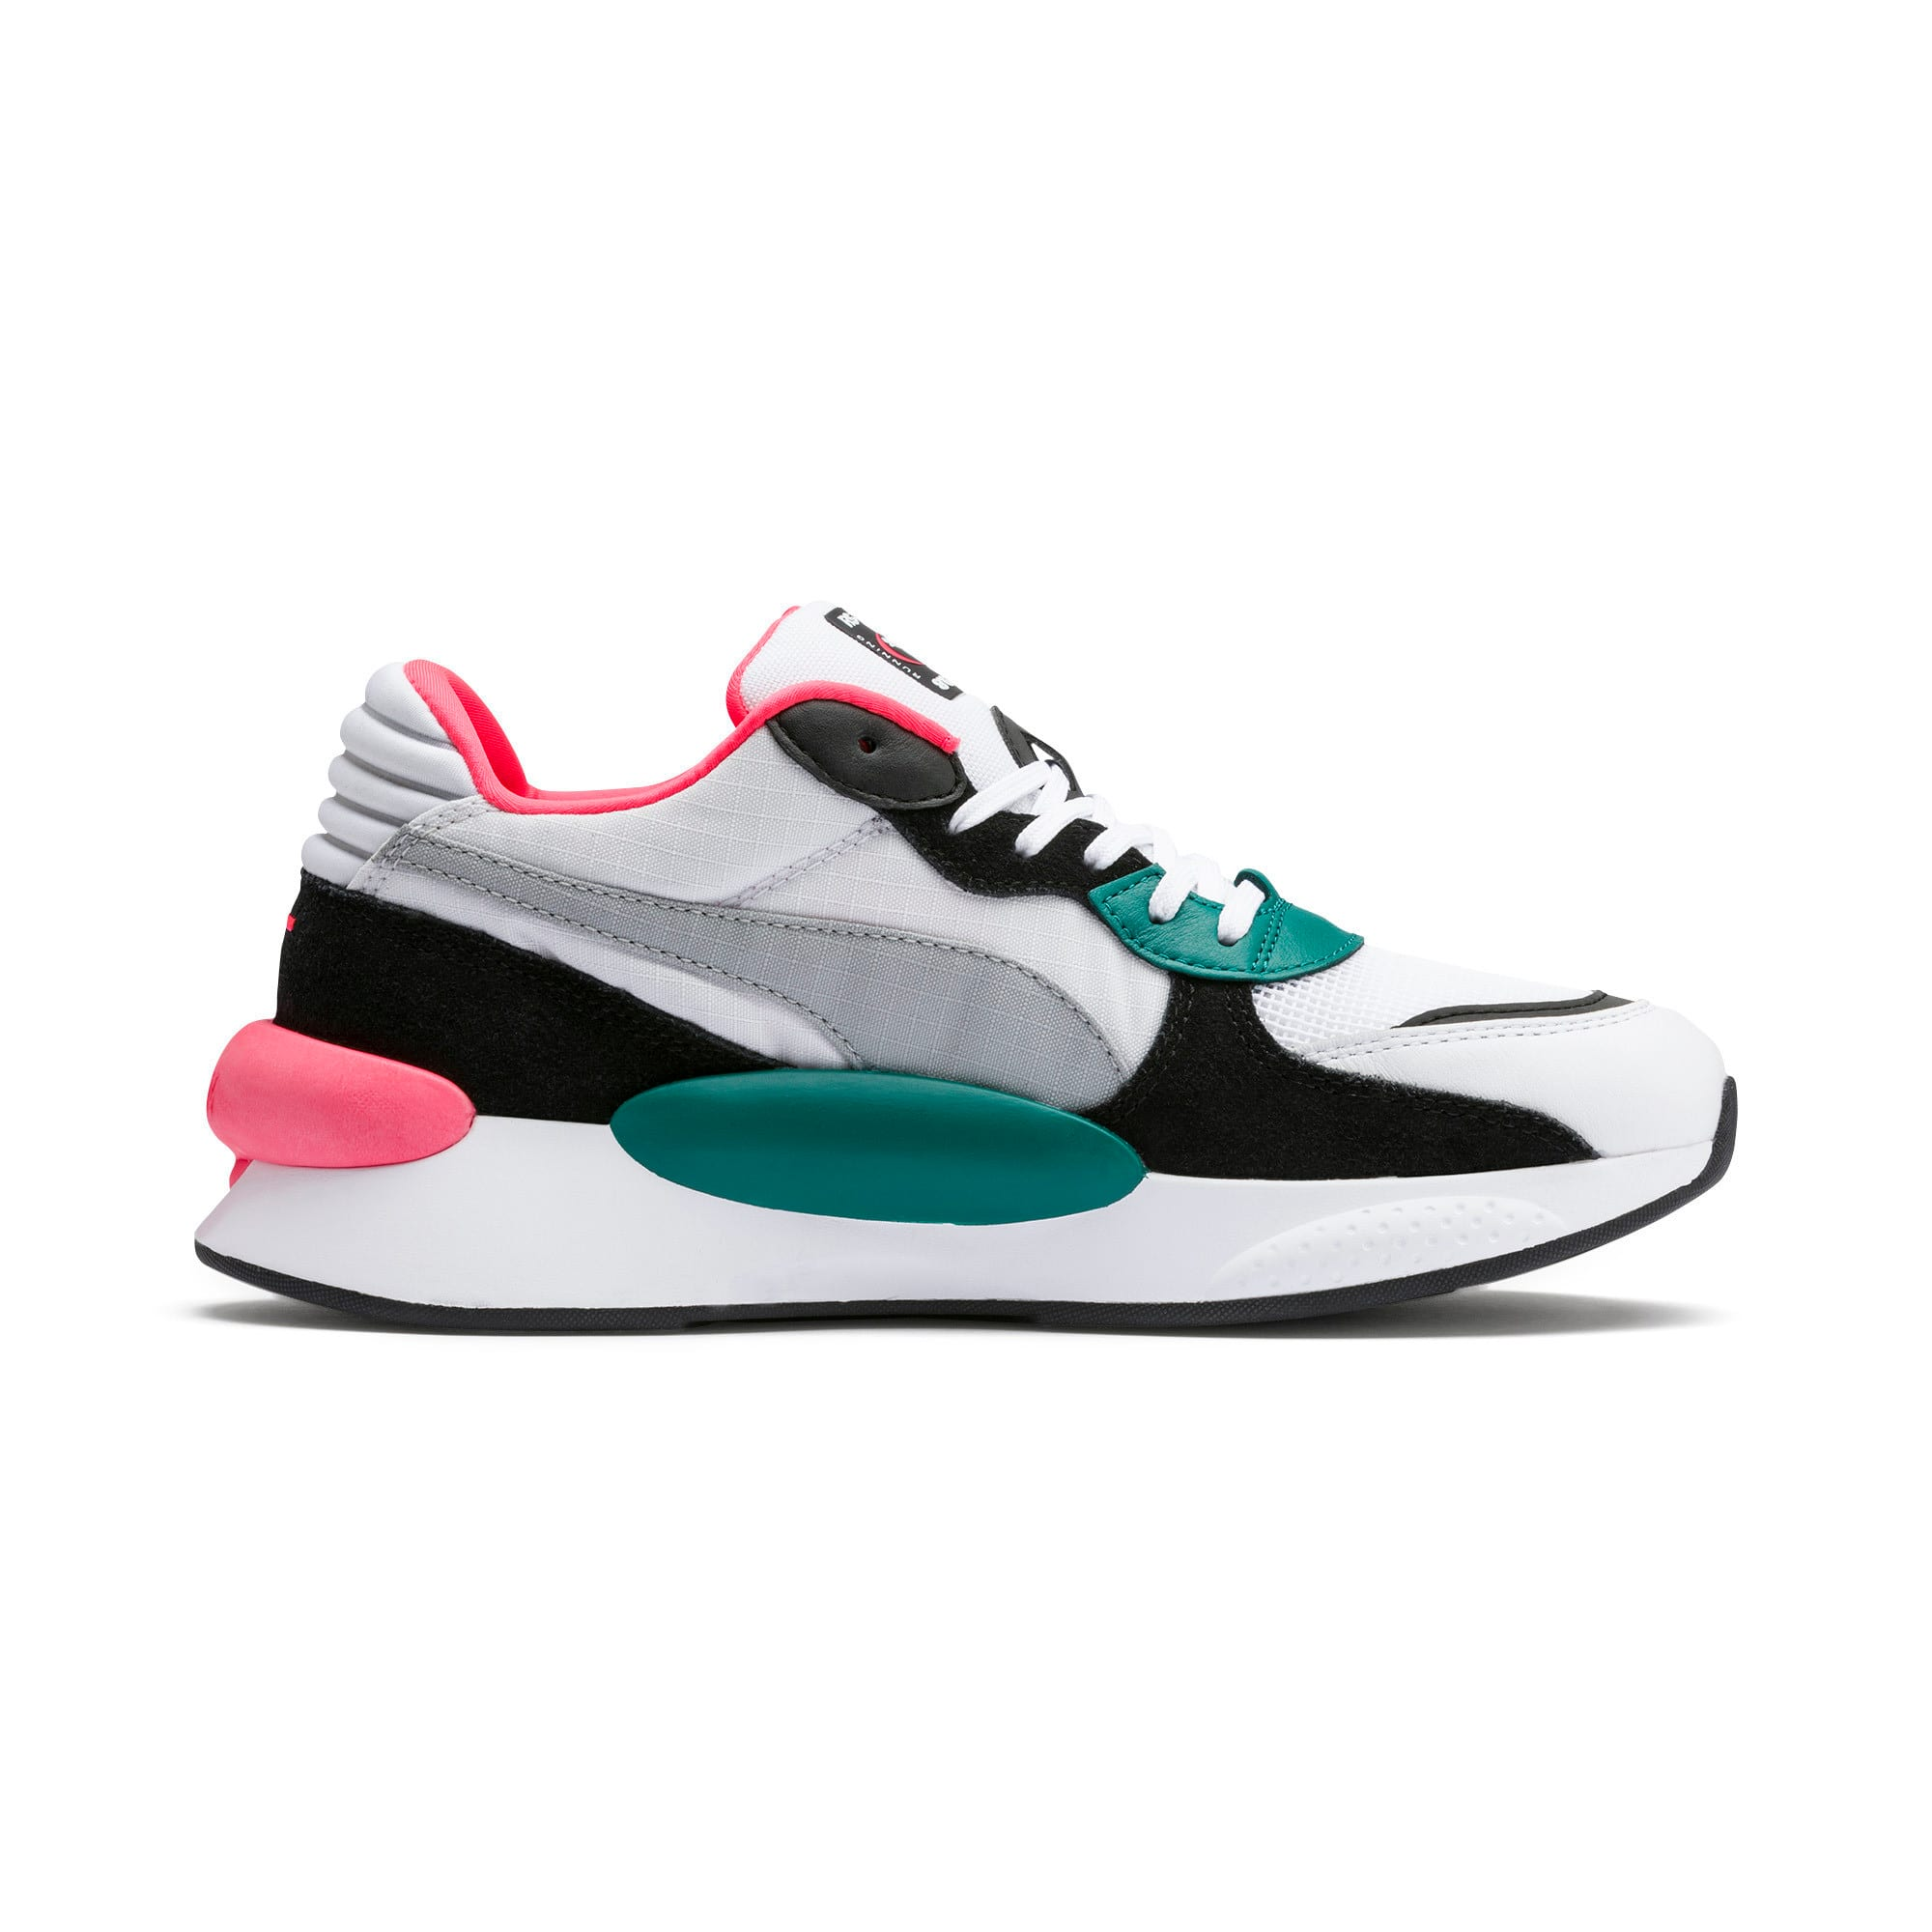 Thumbnail 5 van RS 9.8 Space sportschoenen, Puma White-blauwgroen, medium